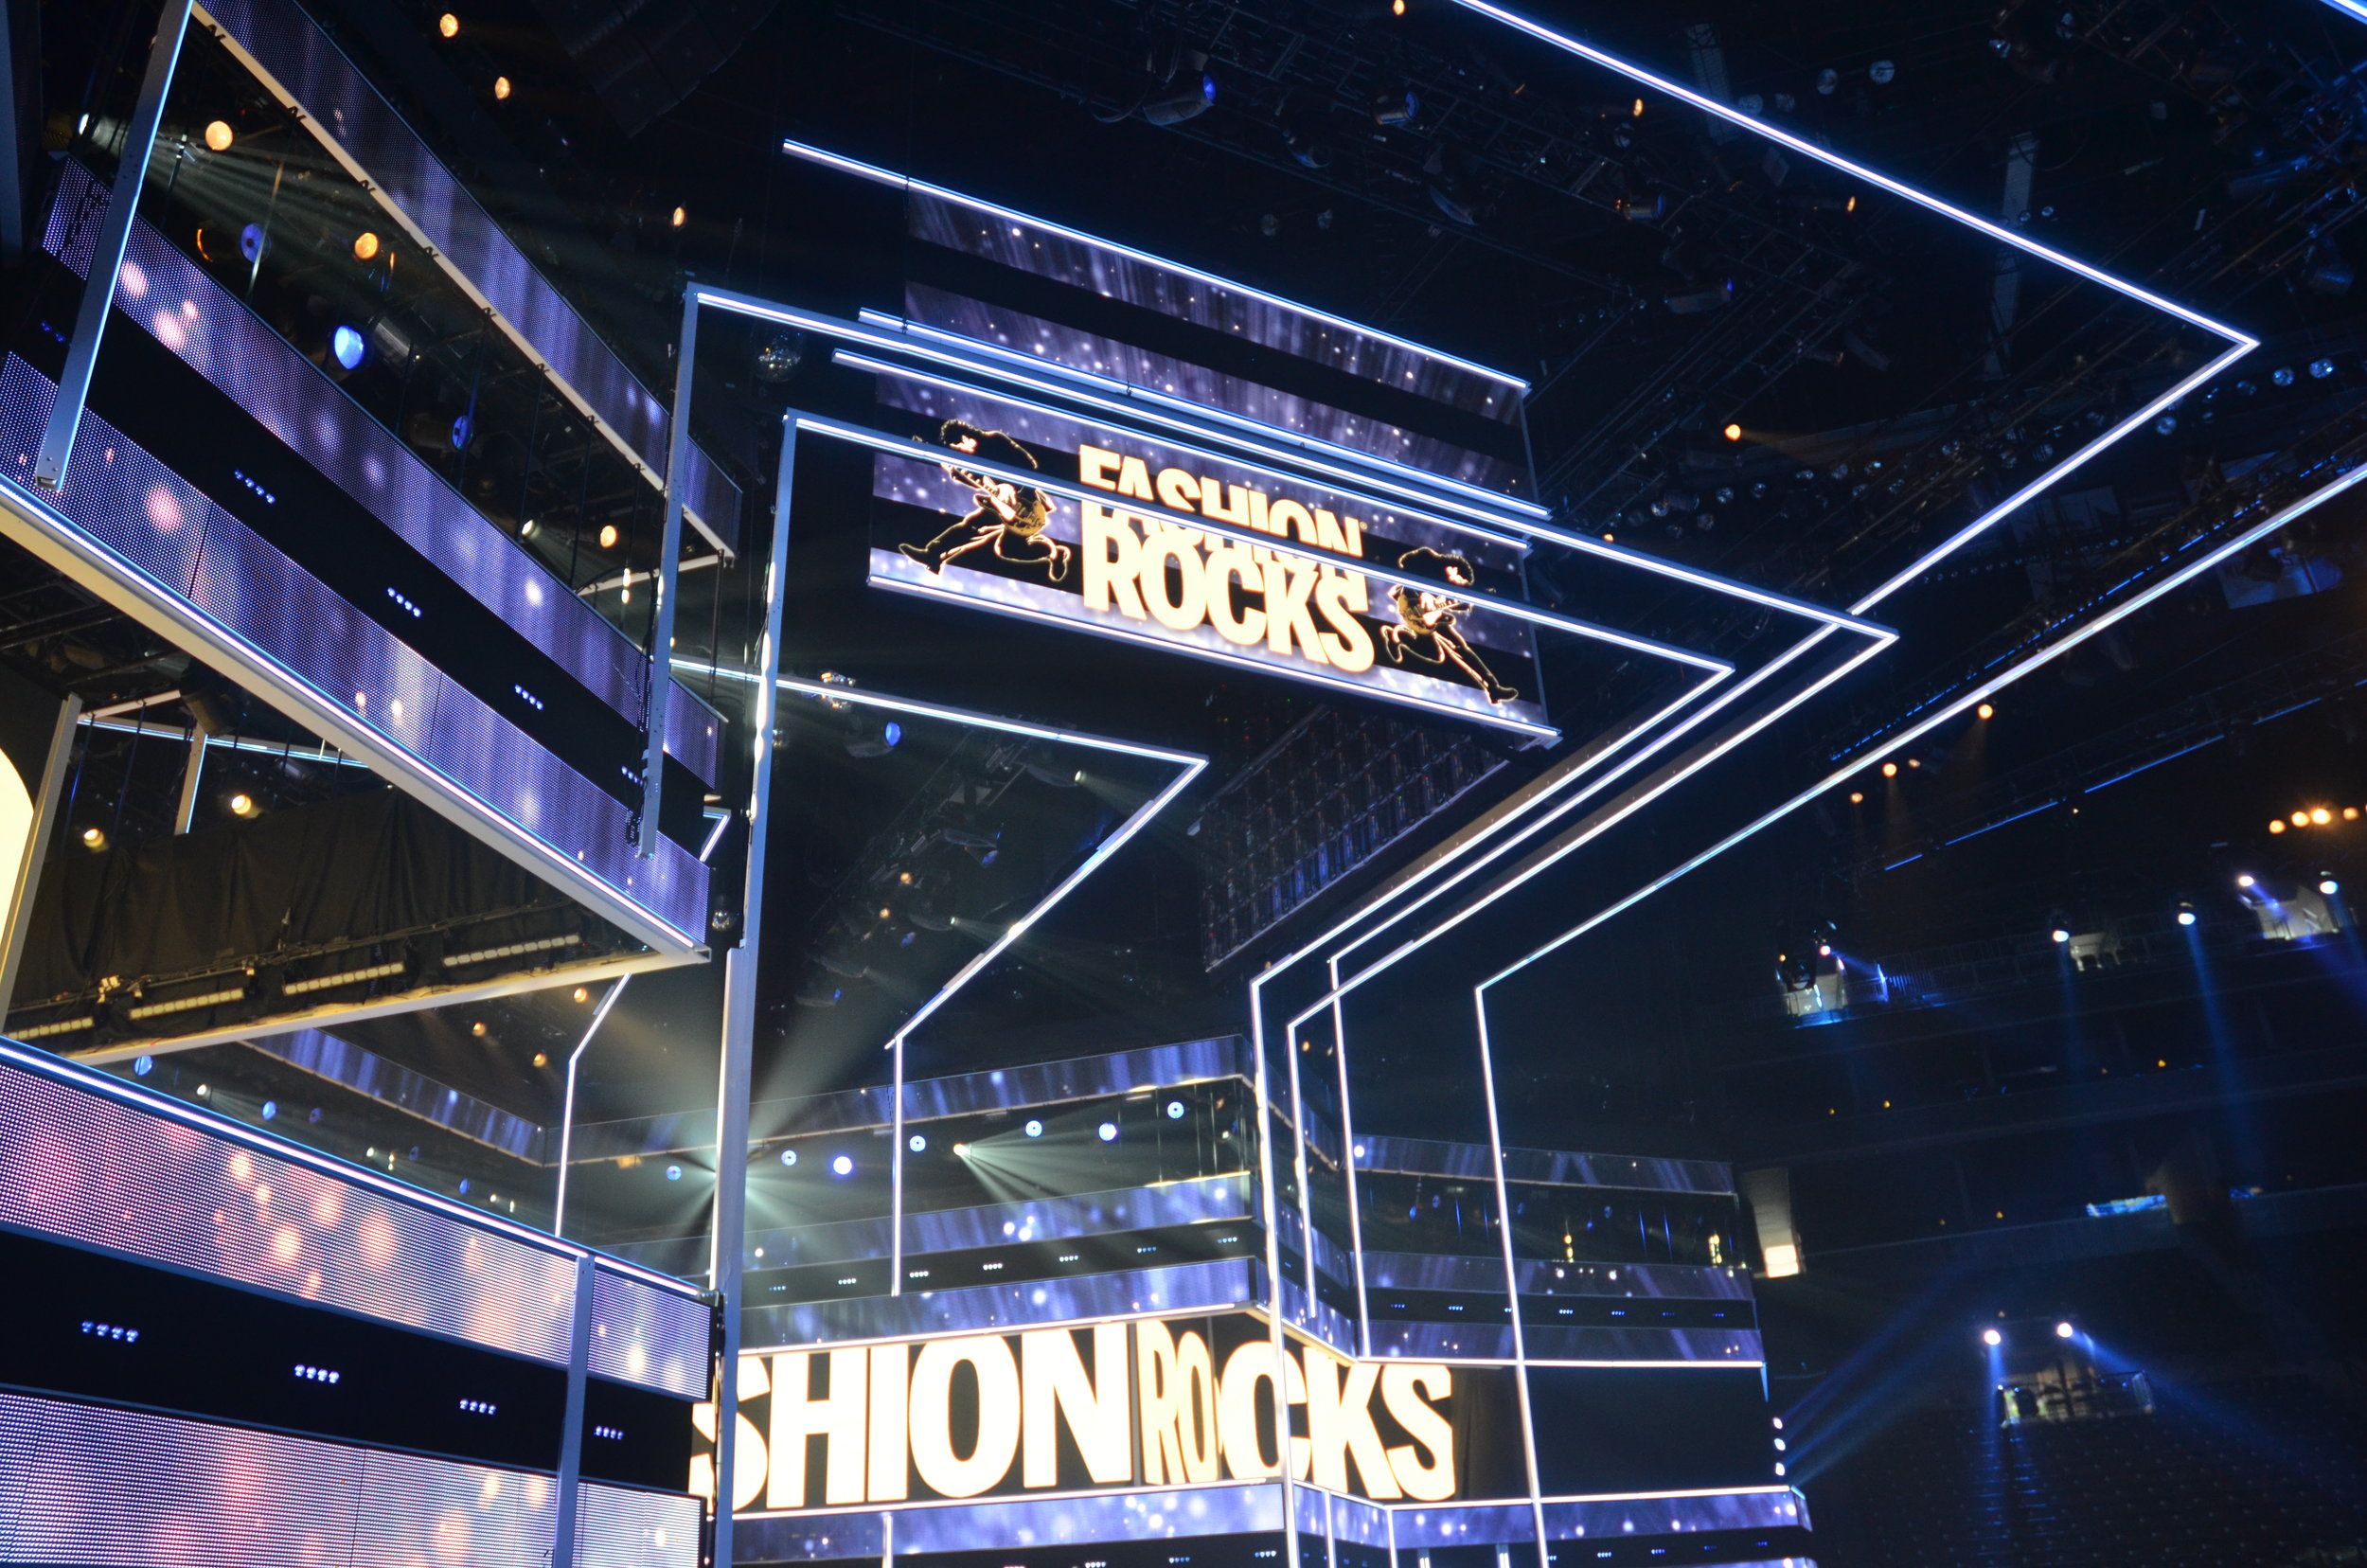 Fashion Rocks 2014 copy.JPG